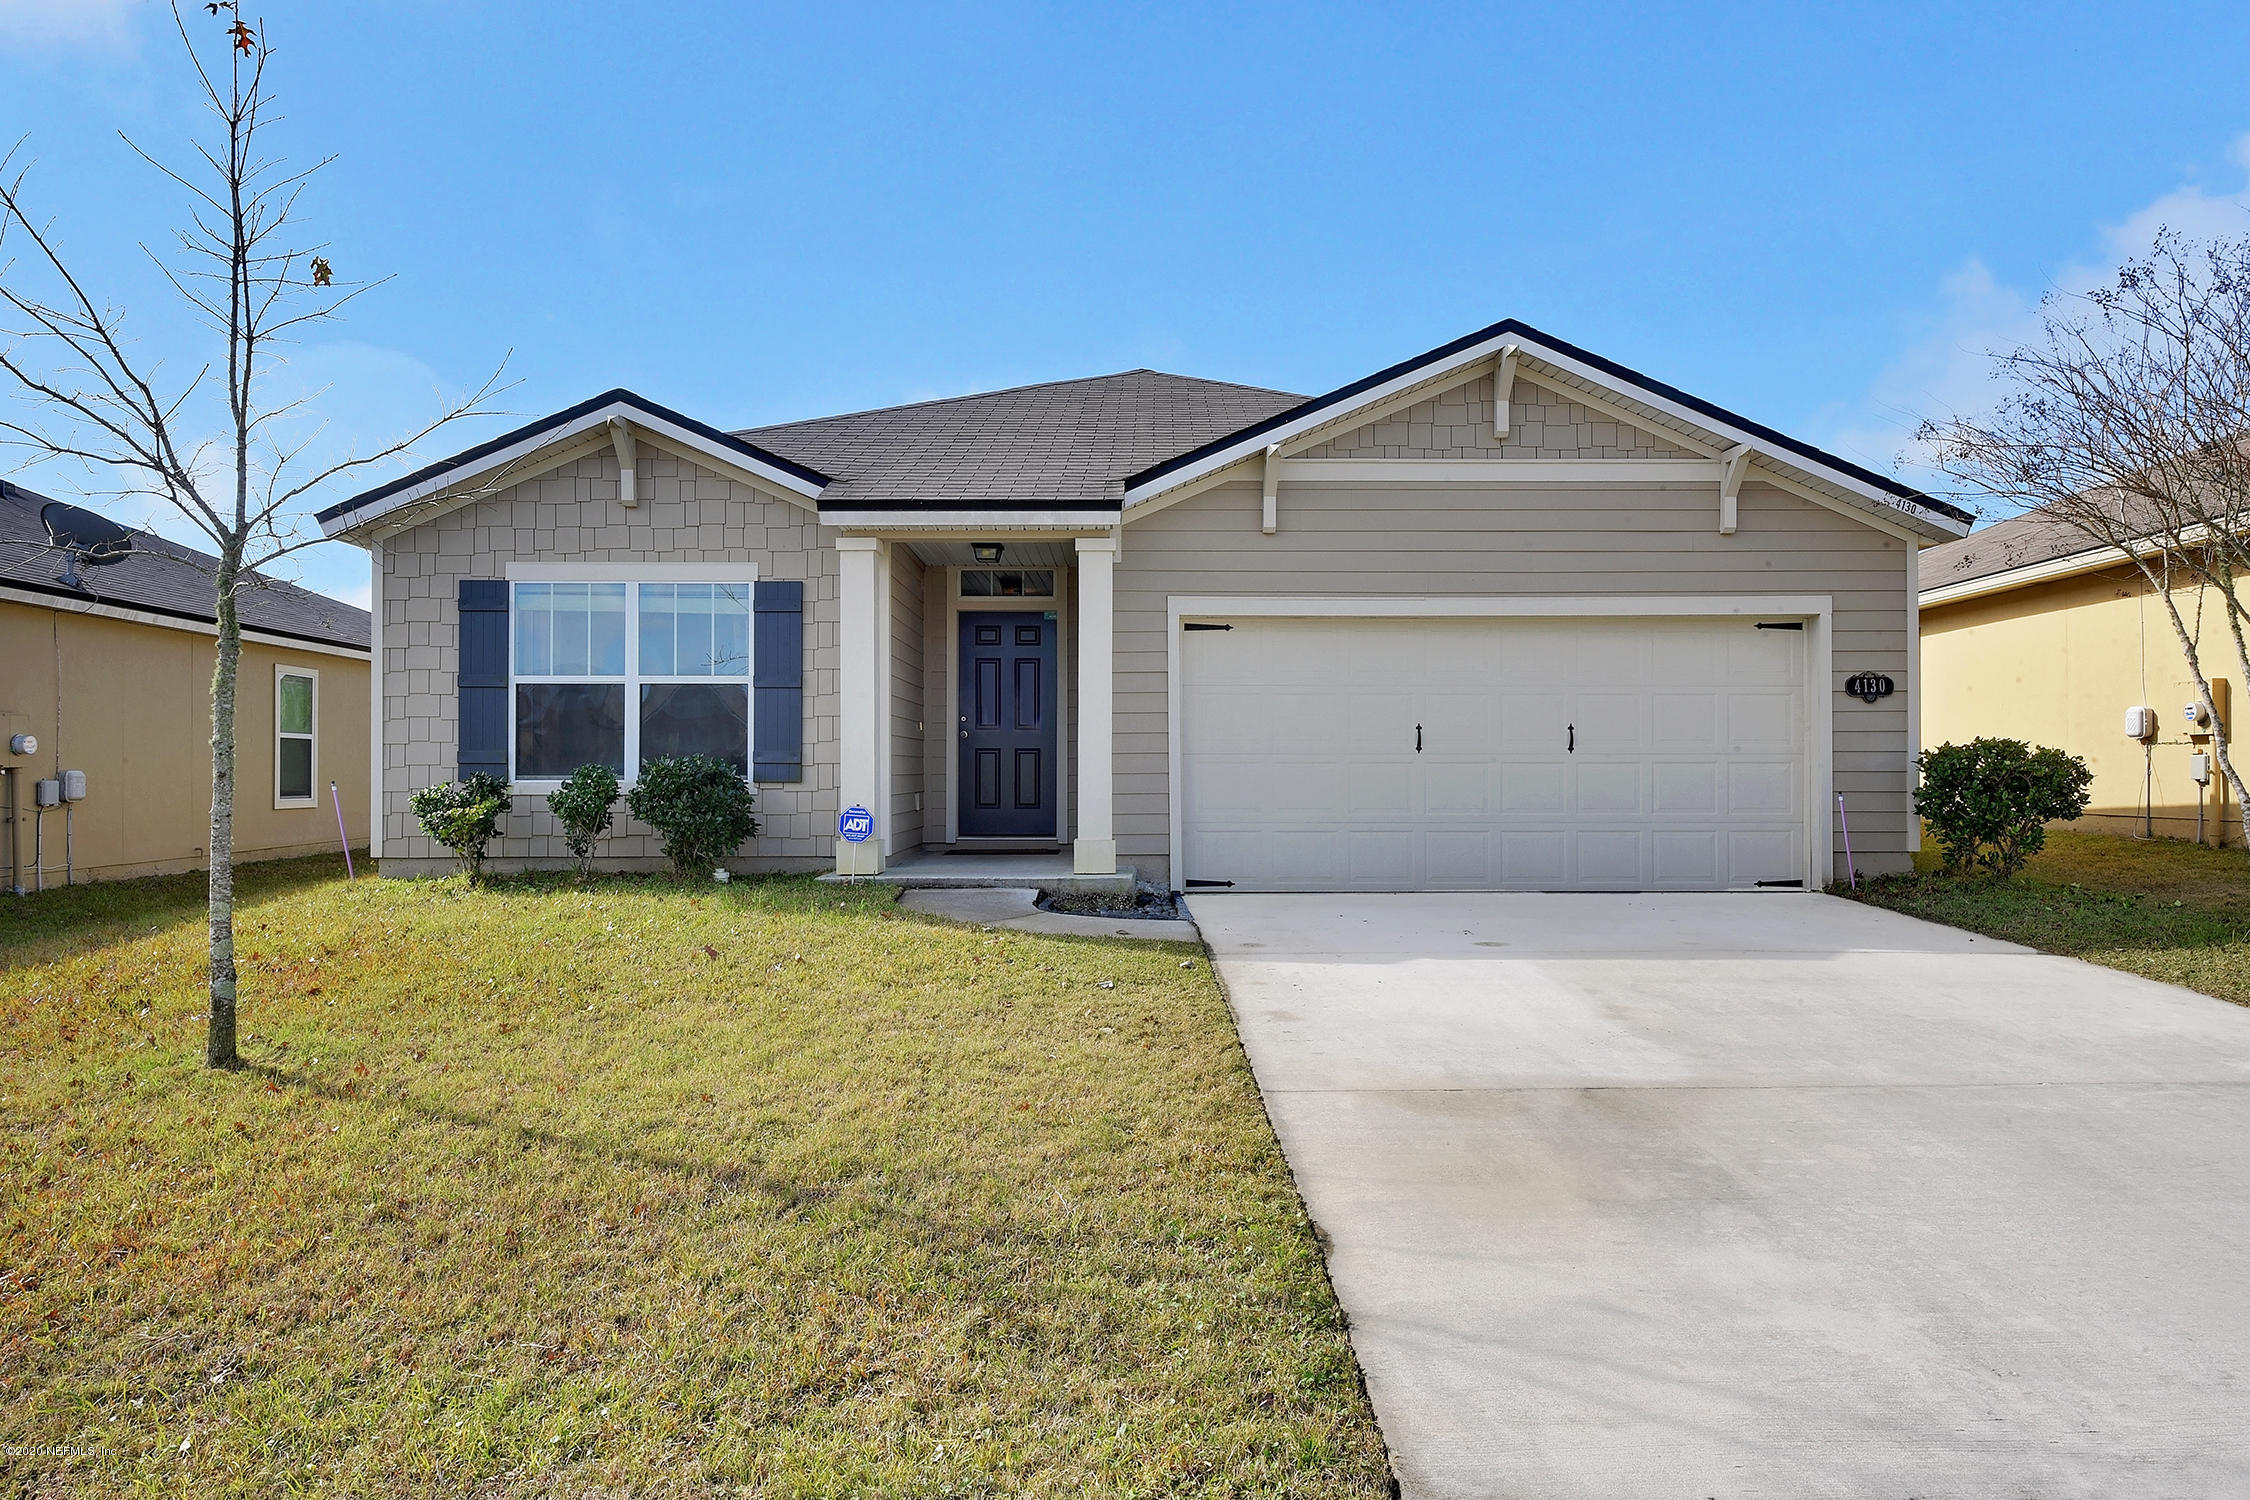 4130 GREAT FALLS, MIDDLEBURG, FLORIDA 32068, 3 Bedrooms Bedrooms, ,2 BathroomsBathrooms,Residential,For sale,GREAT FALLS,1030412